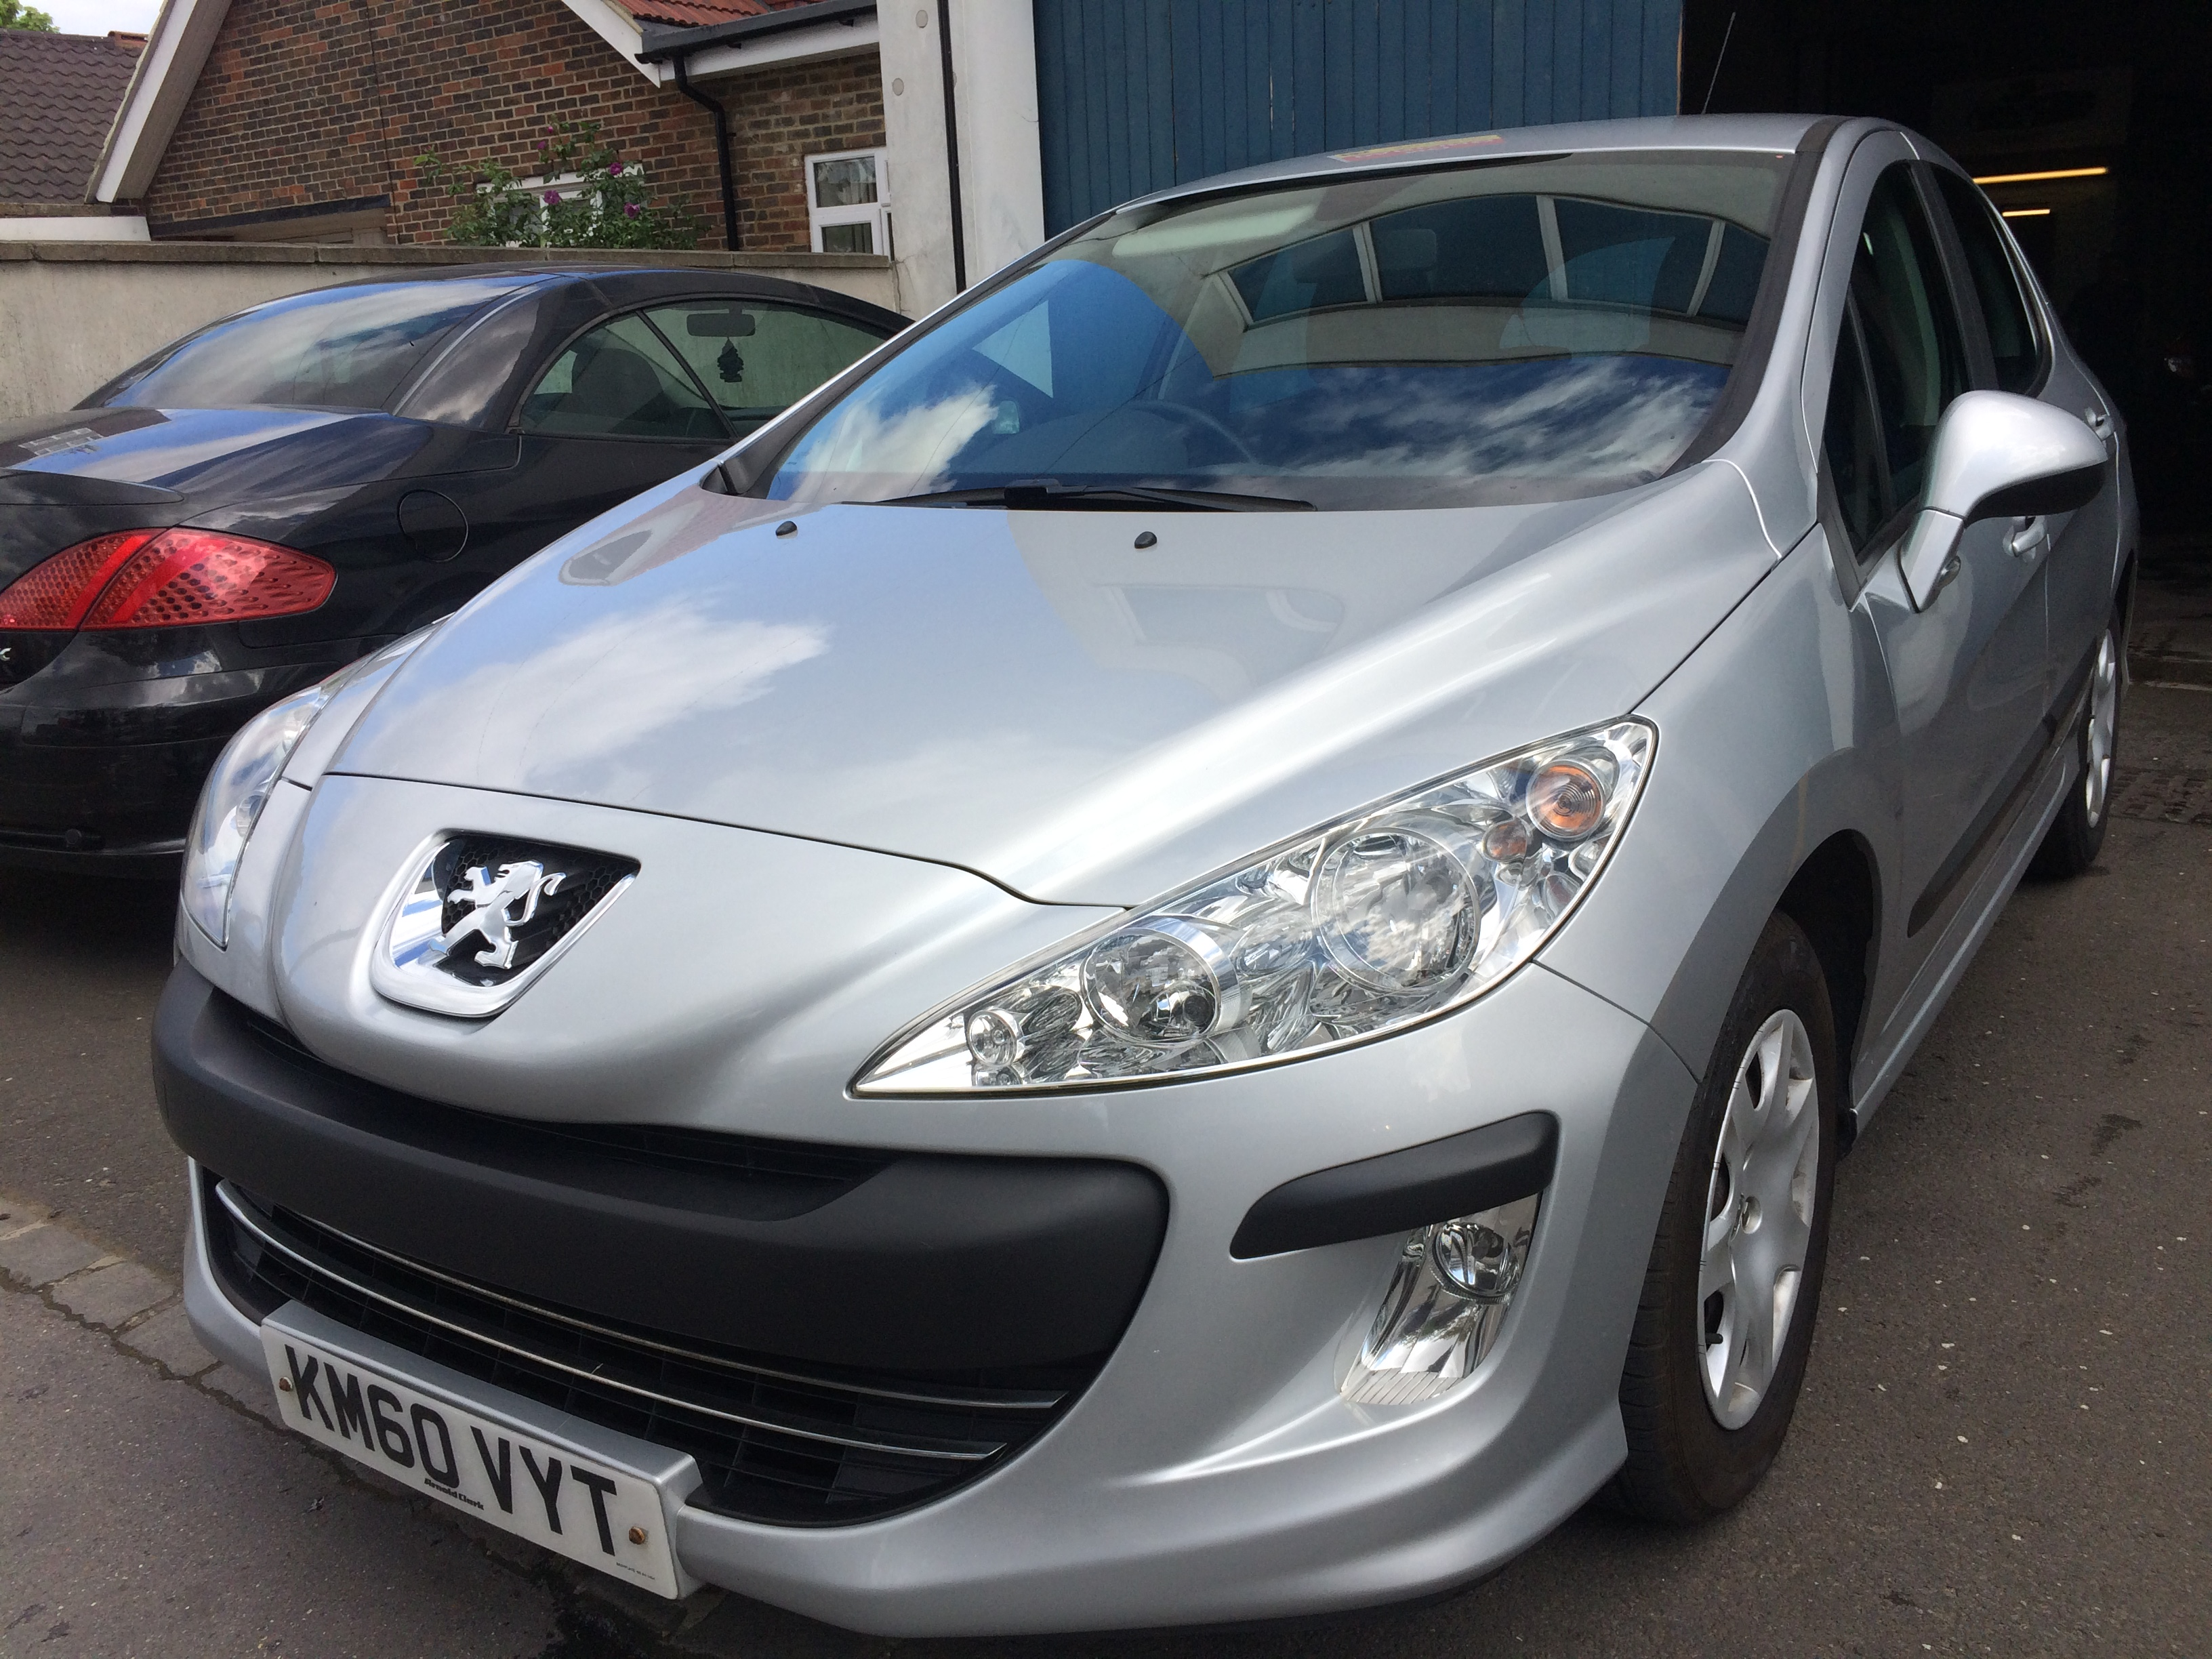 Peugeot 308 1.4 VTi S 5dr 1 PREVIOUS OWNER,1 YEAR MOT,£2990